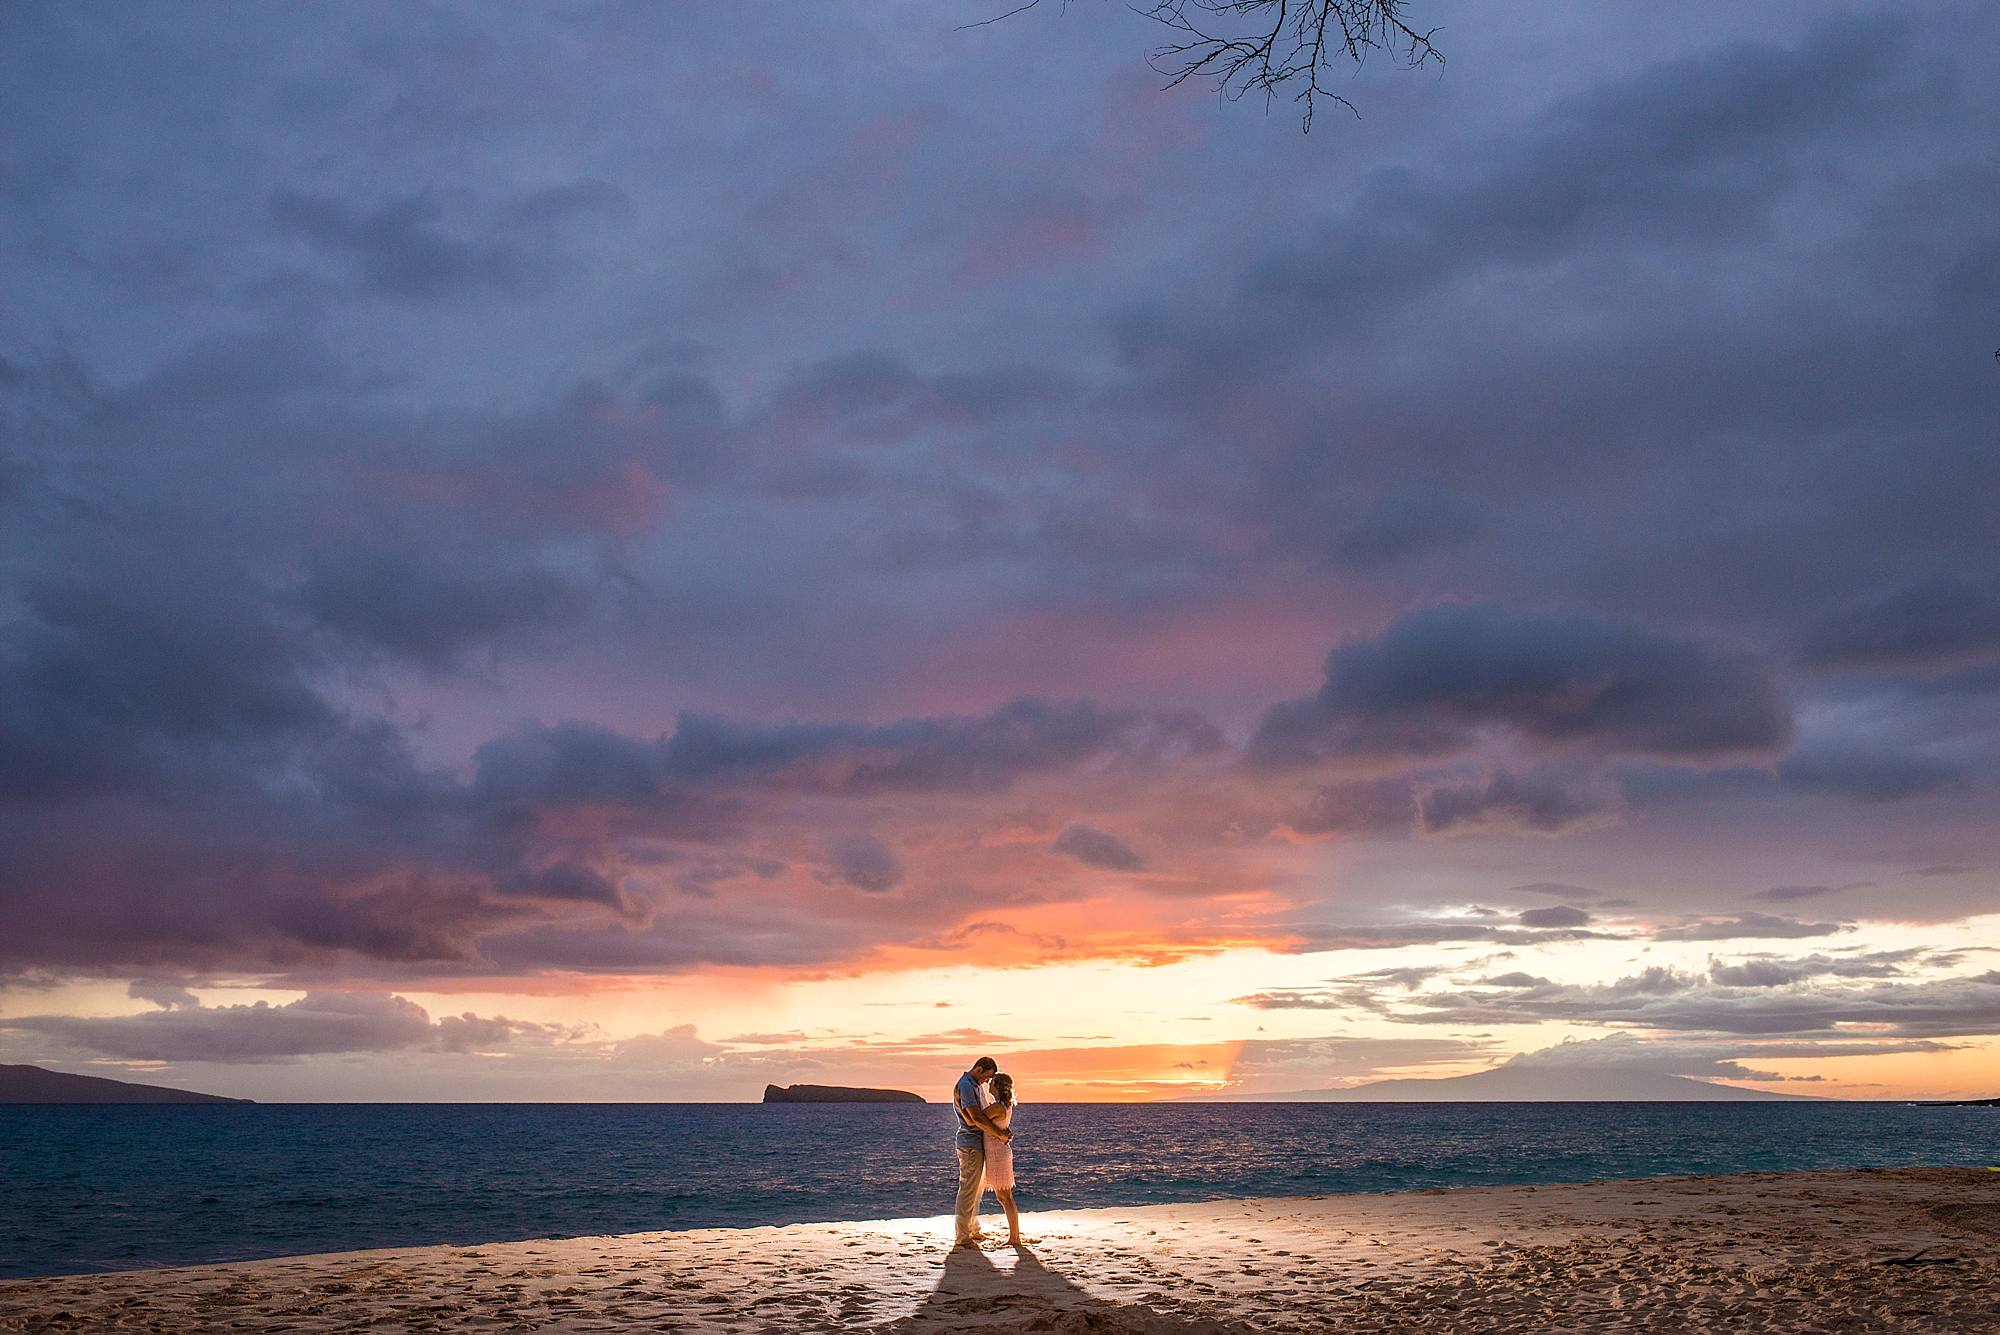 epic sunset during engagement photoshoot in maui, hawaii